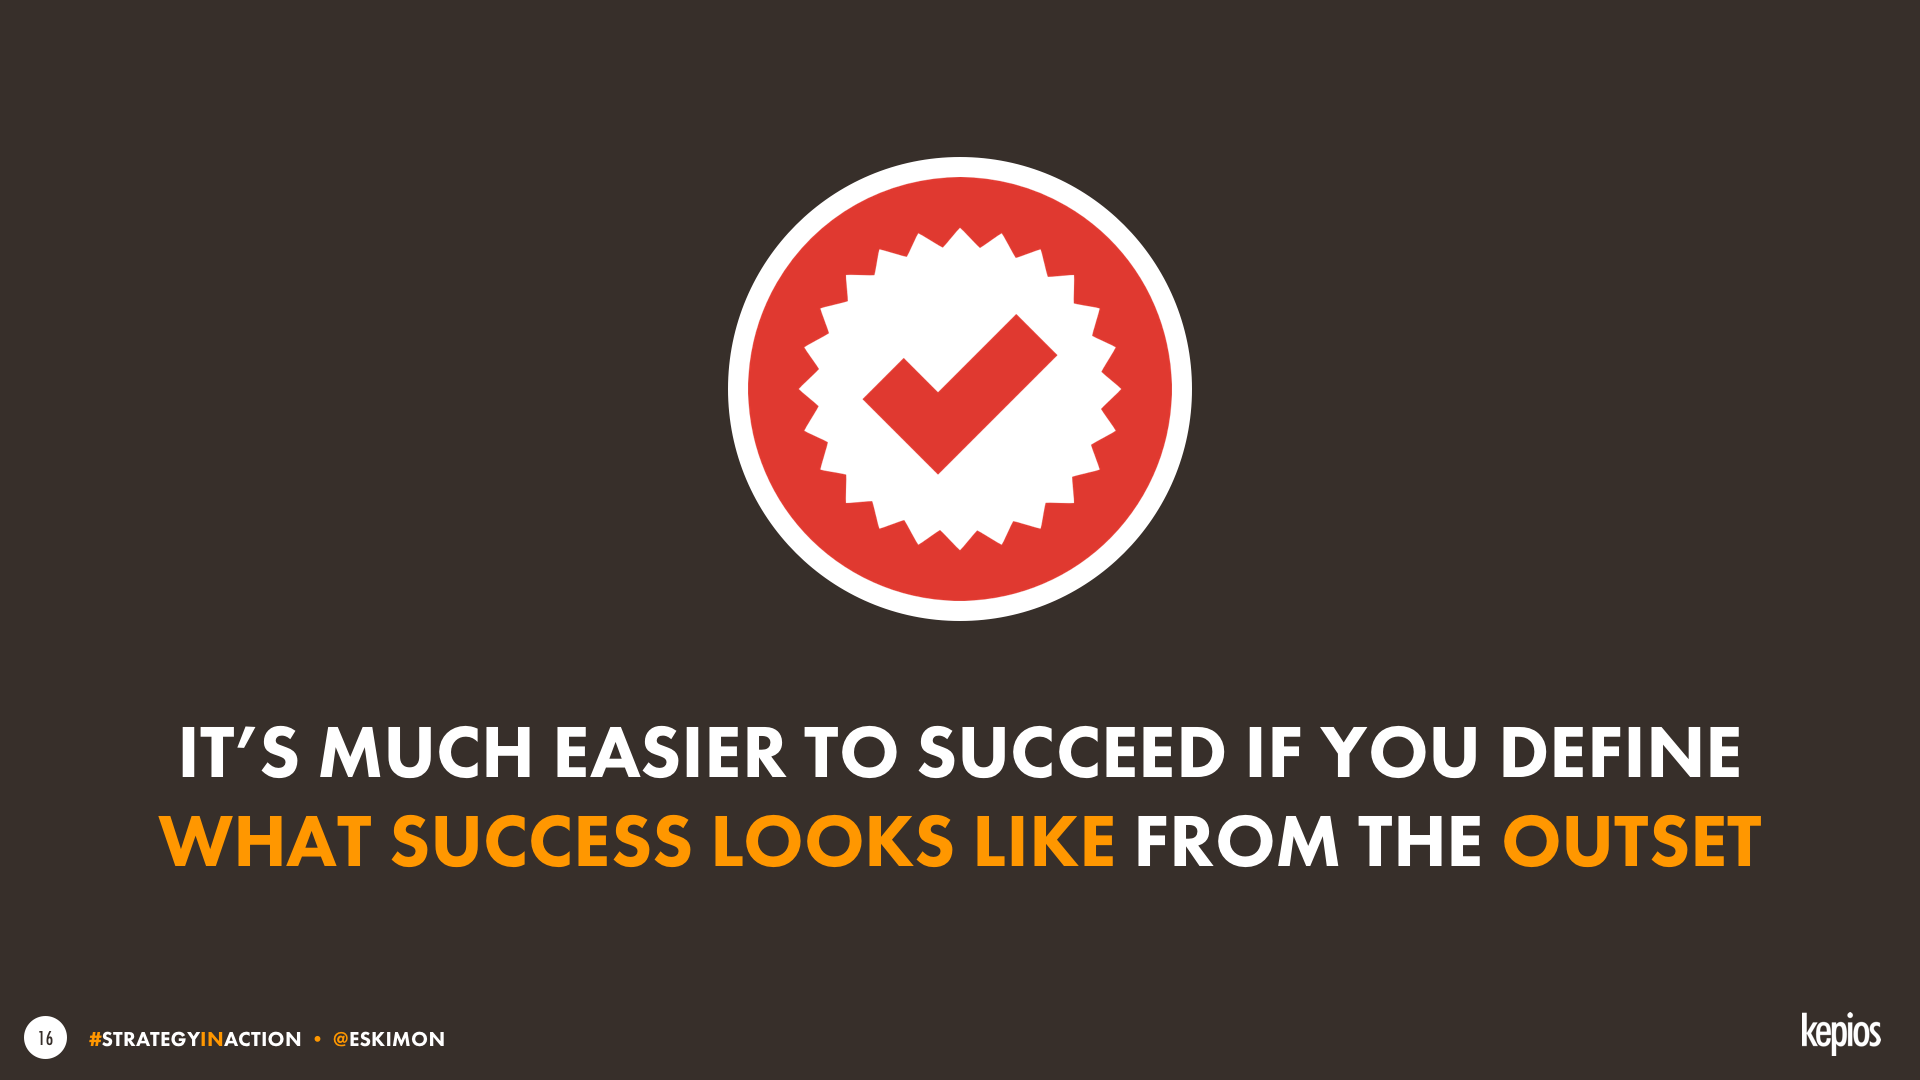 Success is easier if you know what it looks like